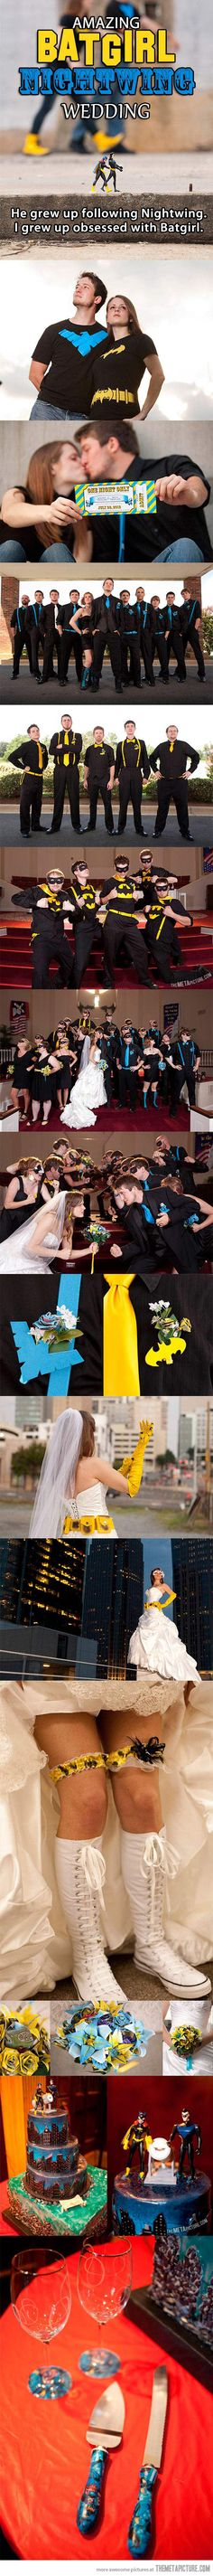 When geeks fall in love and get married…